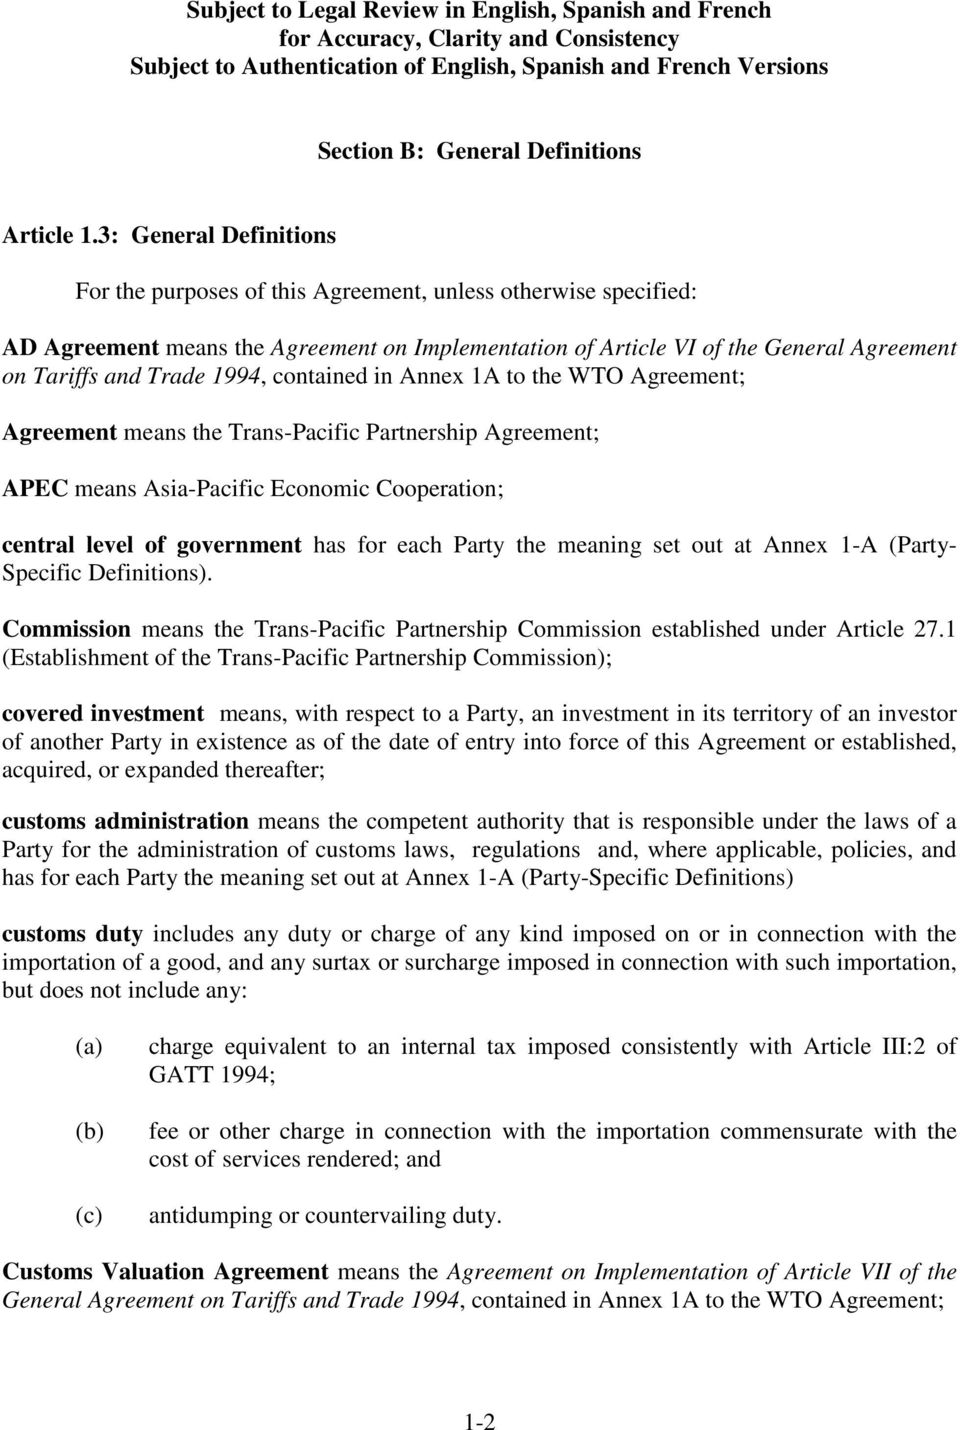 1994, contained in Annex 1A to the WTO Agreement; Agreement means the Trans-Pacific Partnership Agreement; APEC means Asia-Pacific Economic Cooperation; central level of government has for each Party